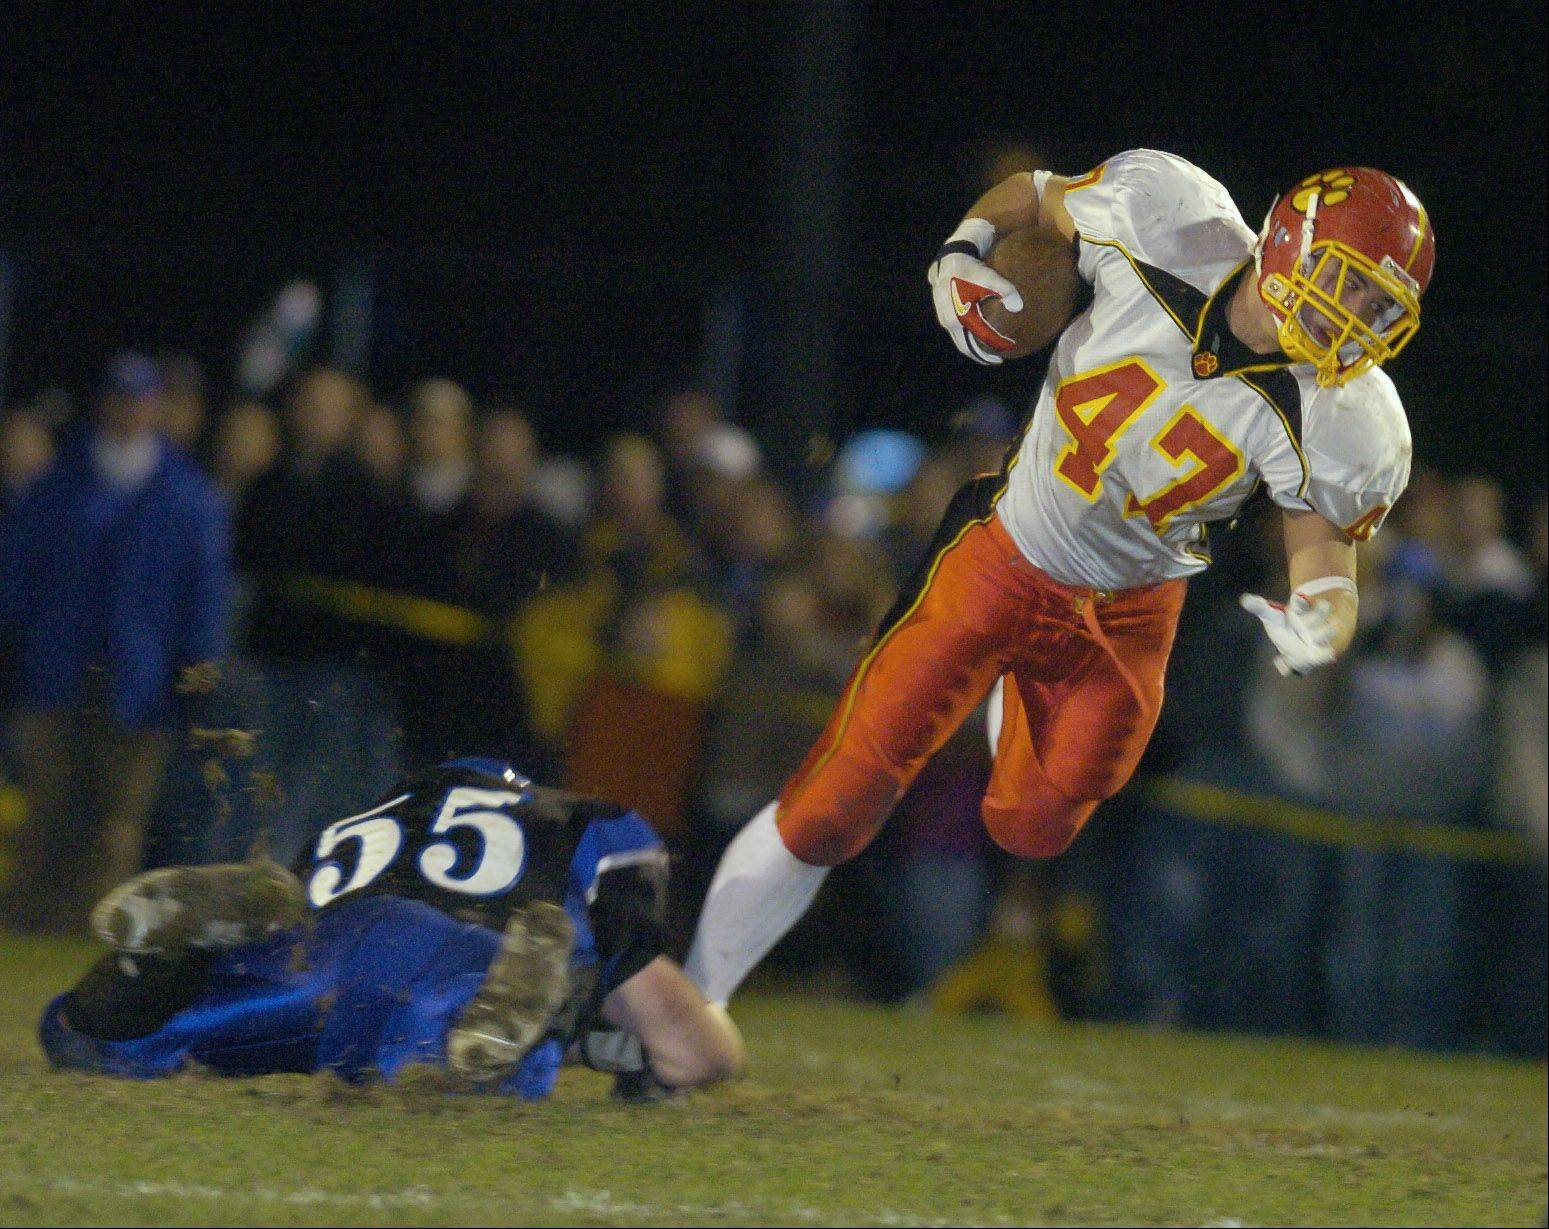 Brandon Holl, above, was a key part of Batavia's 2006 team that reached state, and Holl has returned this year to serve as a volunteer assistant coach on the 12-0 Bulldog squad that is one win away from returning to state.